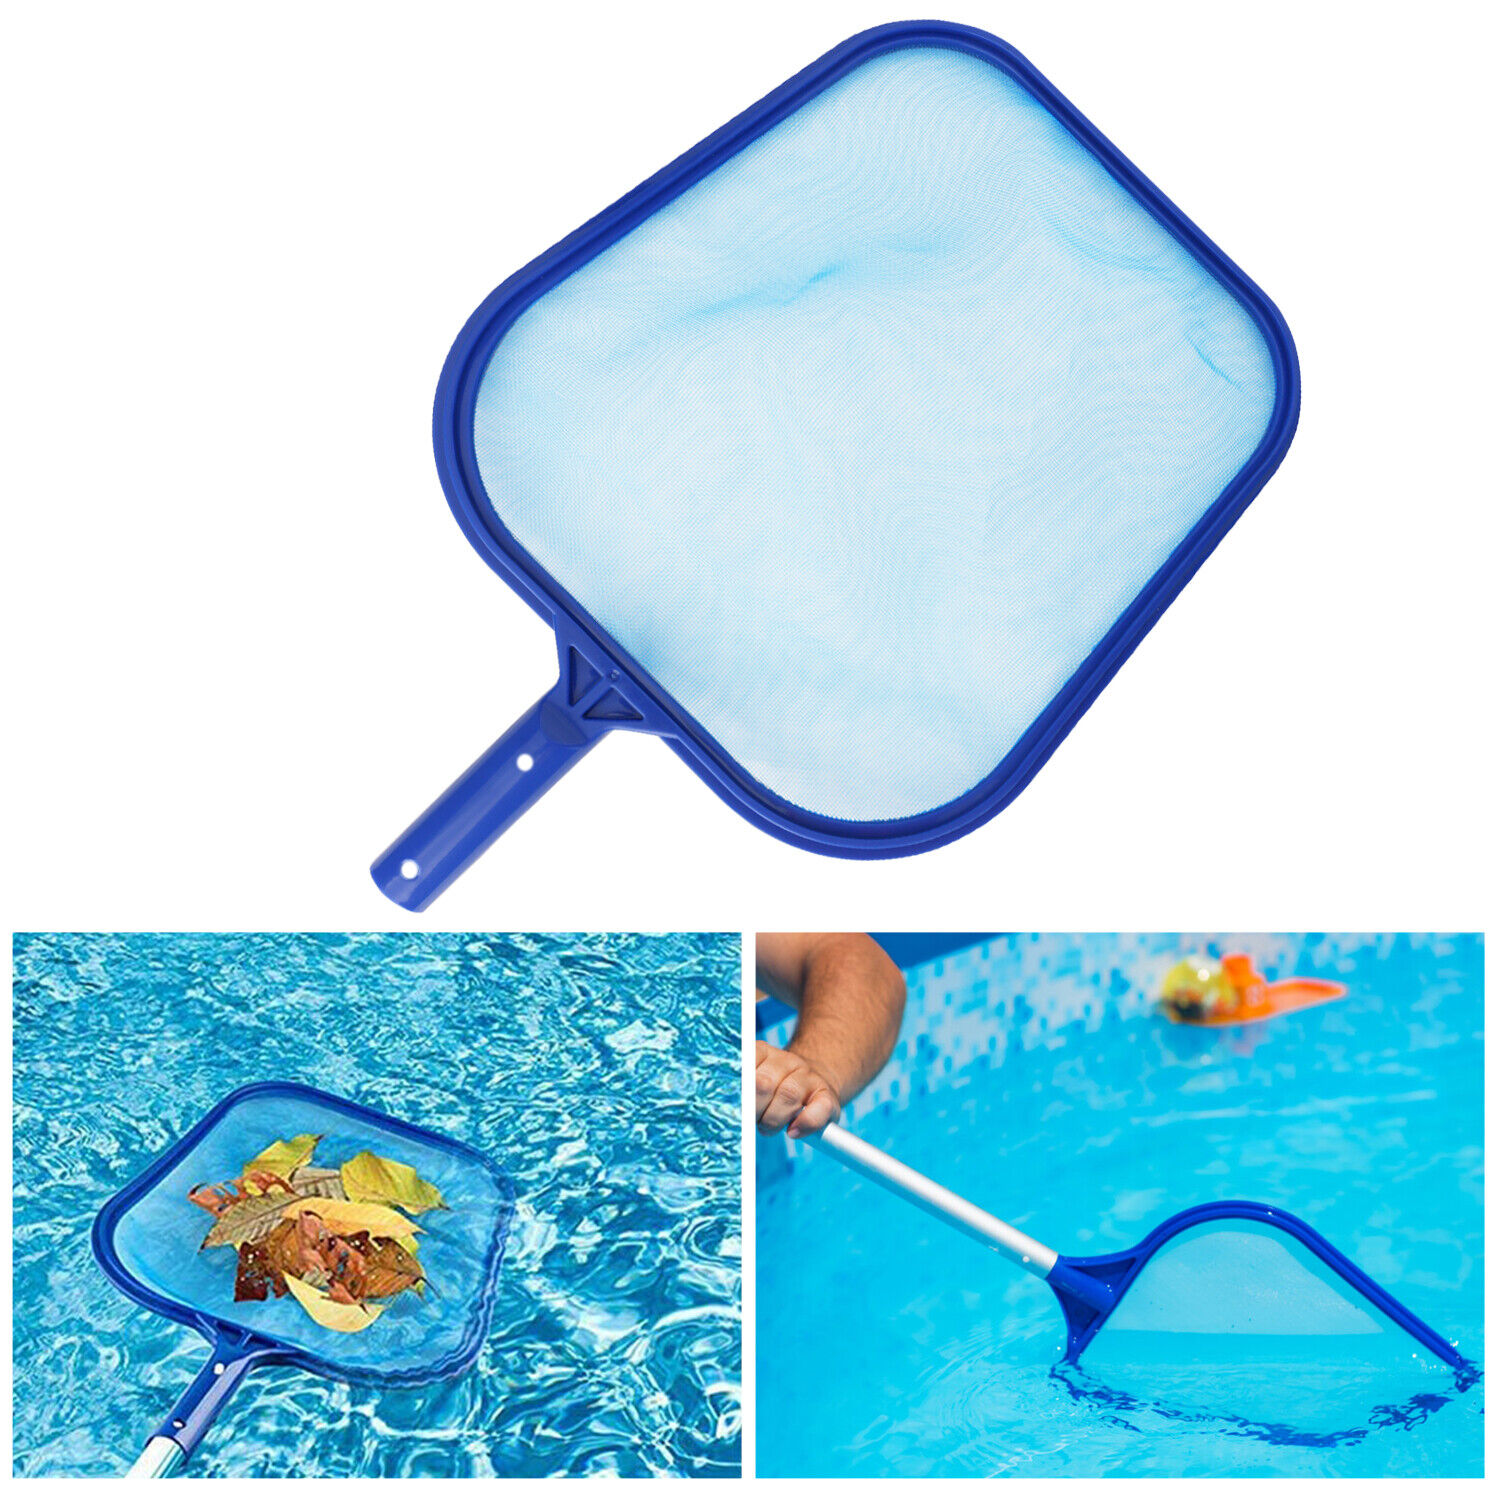 Swimming Pool Leaf Skimmer Rake Mesh Net Spa Pond Cleaning With Telescopic Pole Handheld Pool Brushes & Nets